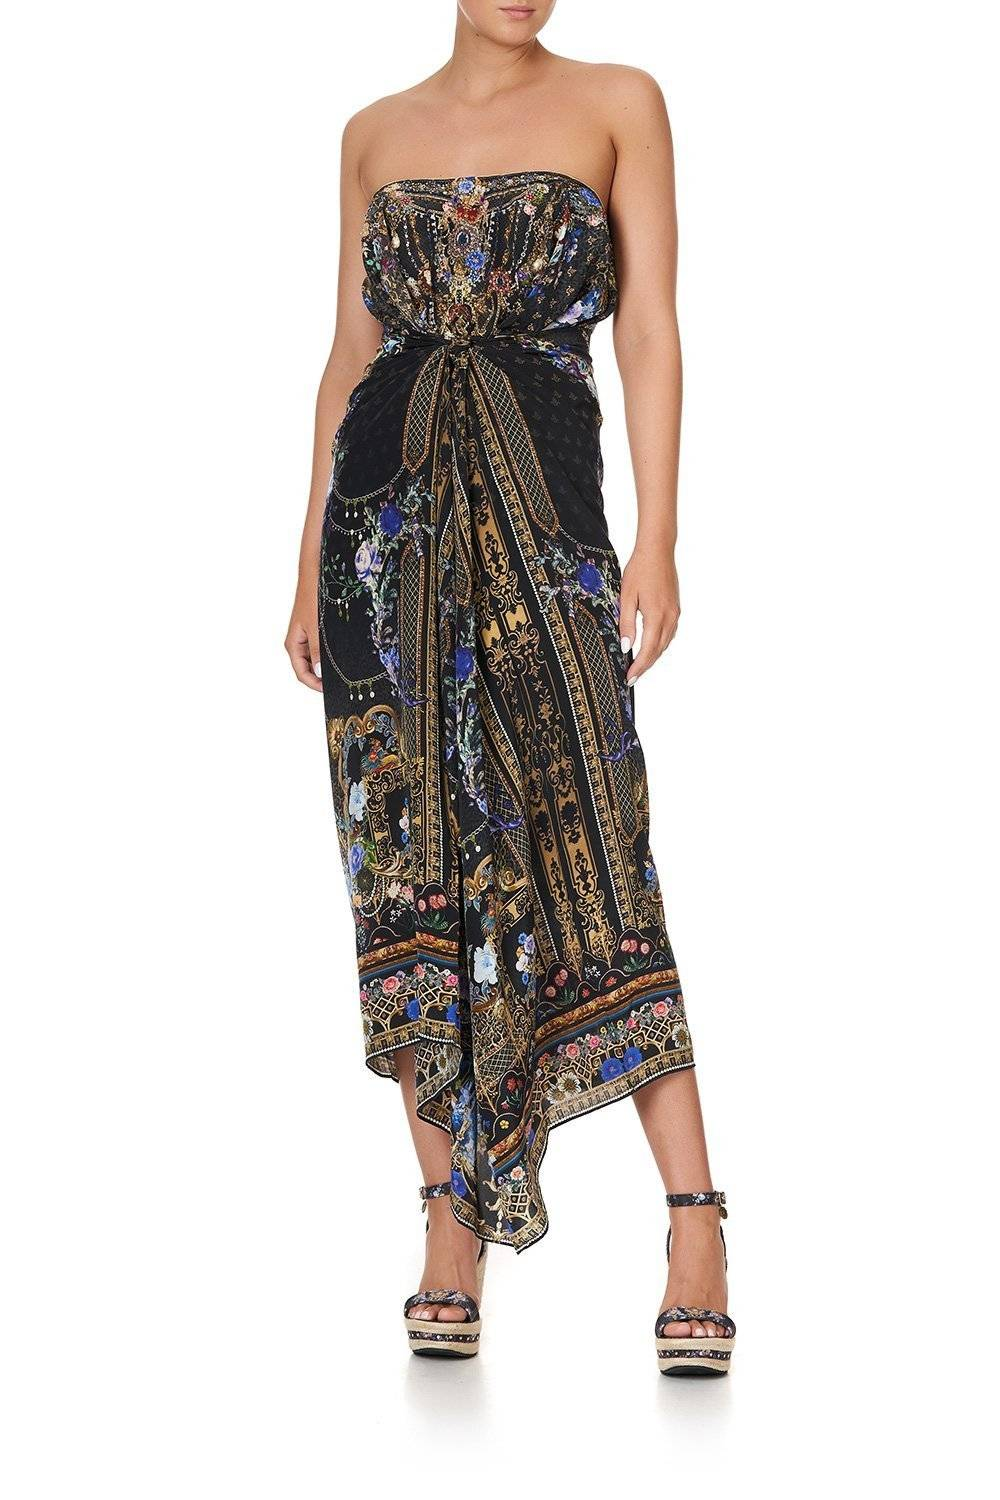 CAMILLA black and blue floral kaftan